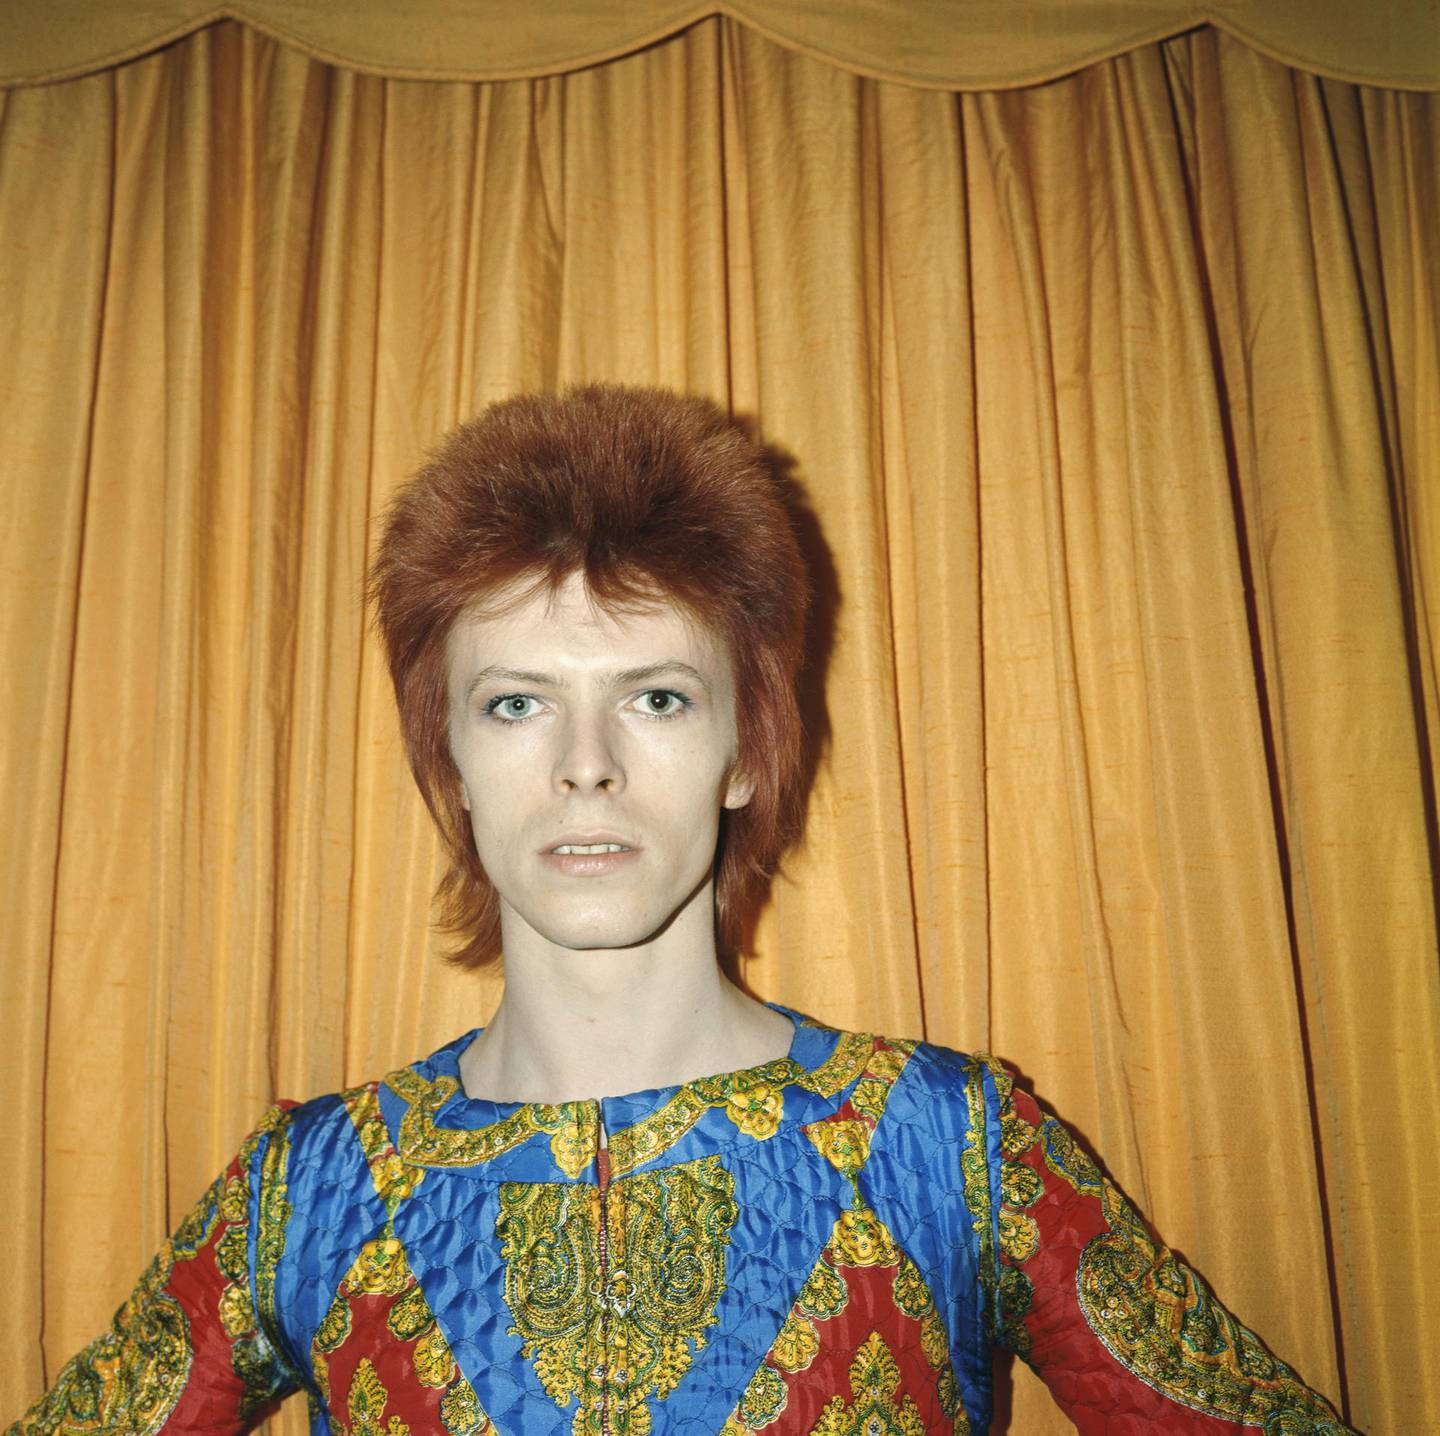 NEW YORK - 1973: Rock and roll musician David Bowie poses for a portrait dressed as 'Ziggy Stardust' in a hotel room in 1973 in New York City, New York. (Photo by Michael Ochs Archives/Getty Images)  *** Local Caption ***  al12ja-david-bowie08.jpg